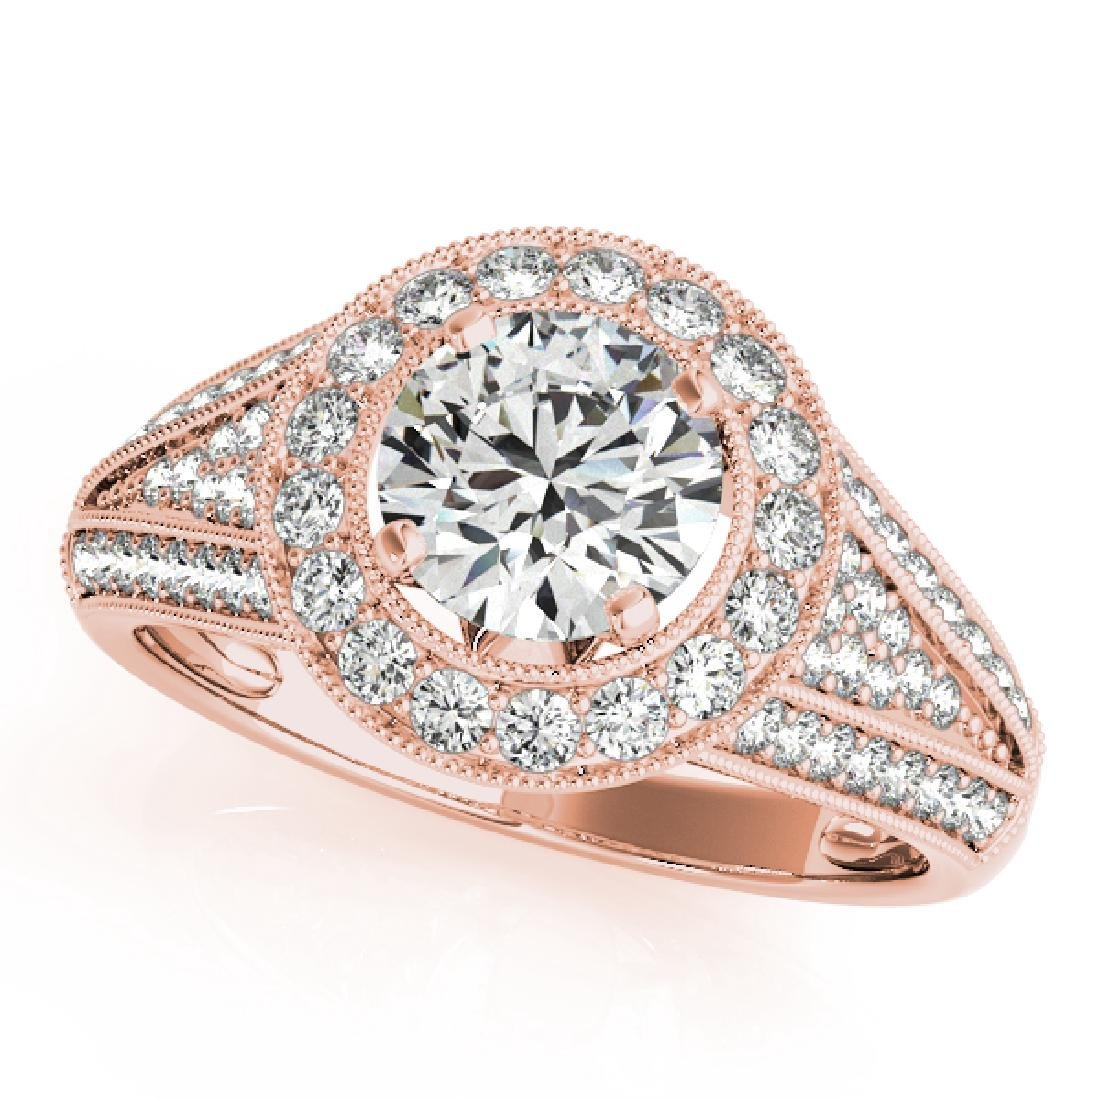 CERTIFIED 18K ROSE GOLD 1.09 CT G-H/VS-SI1 DIAMOND HALO